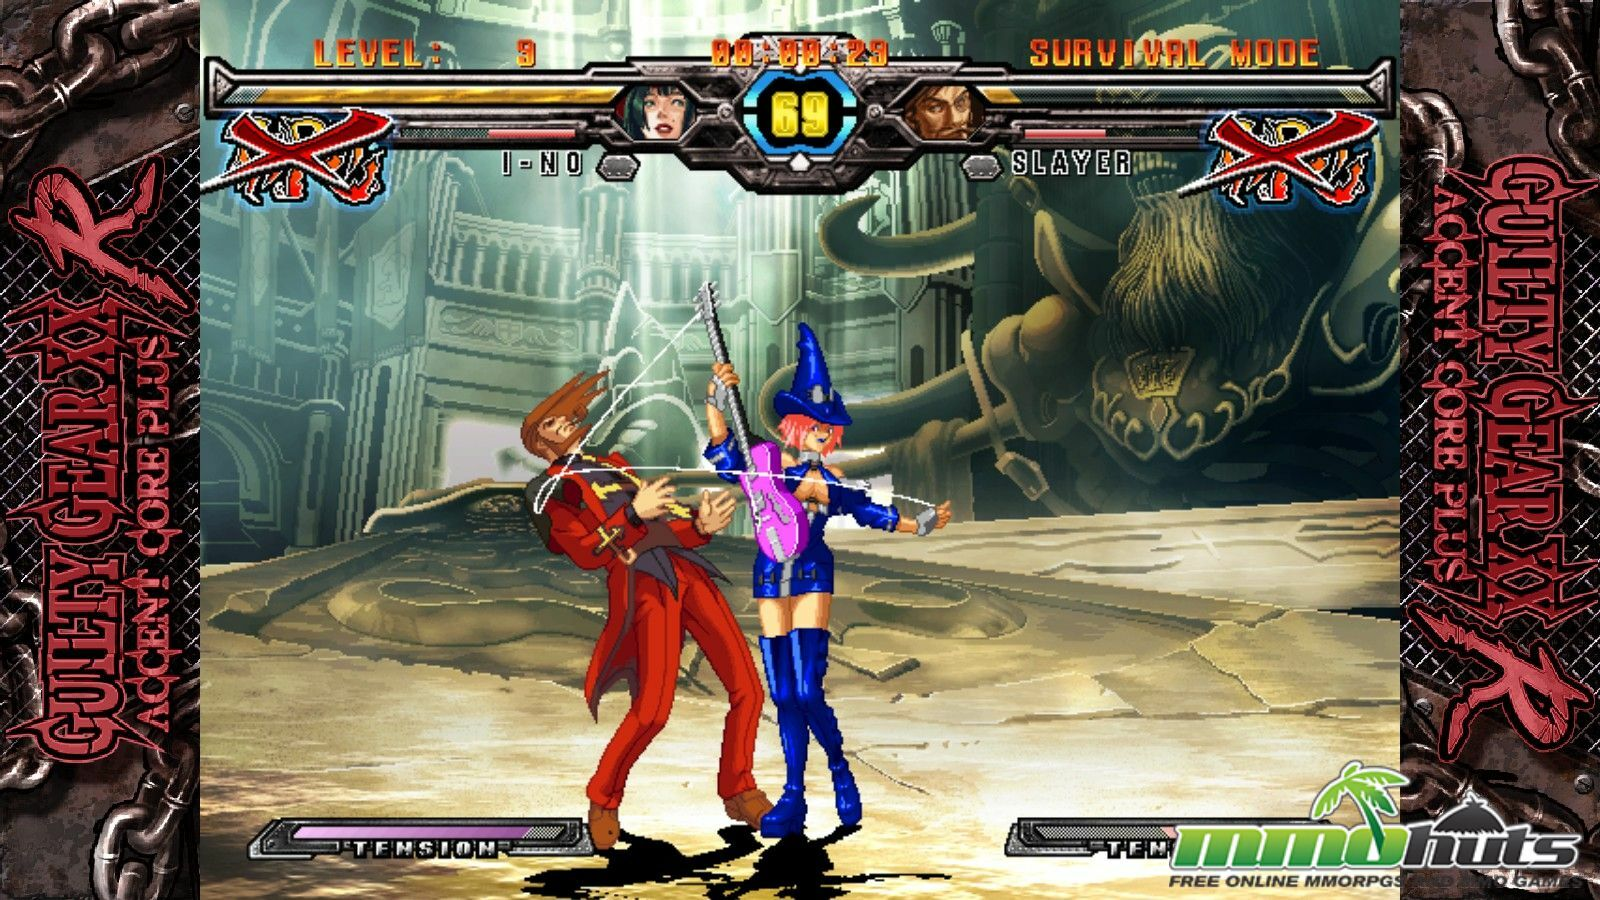 Guilty Gear XX Accent Core Plus R Steam Review